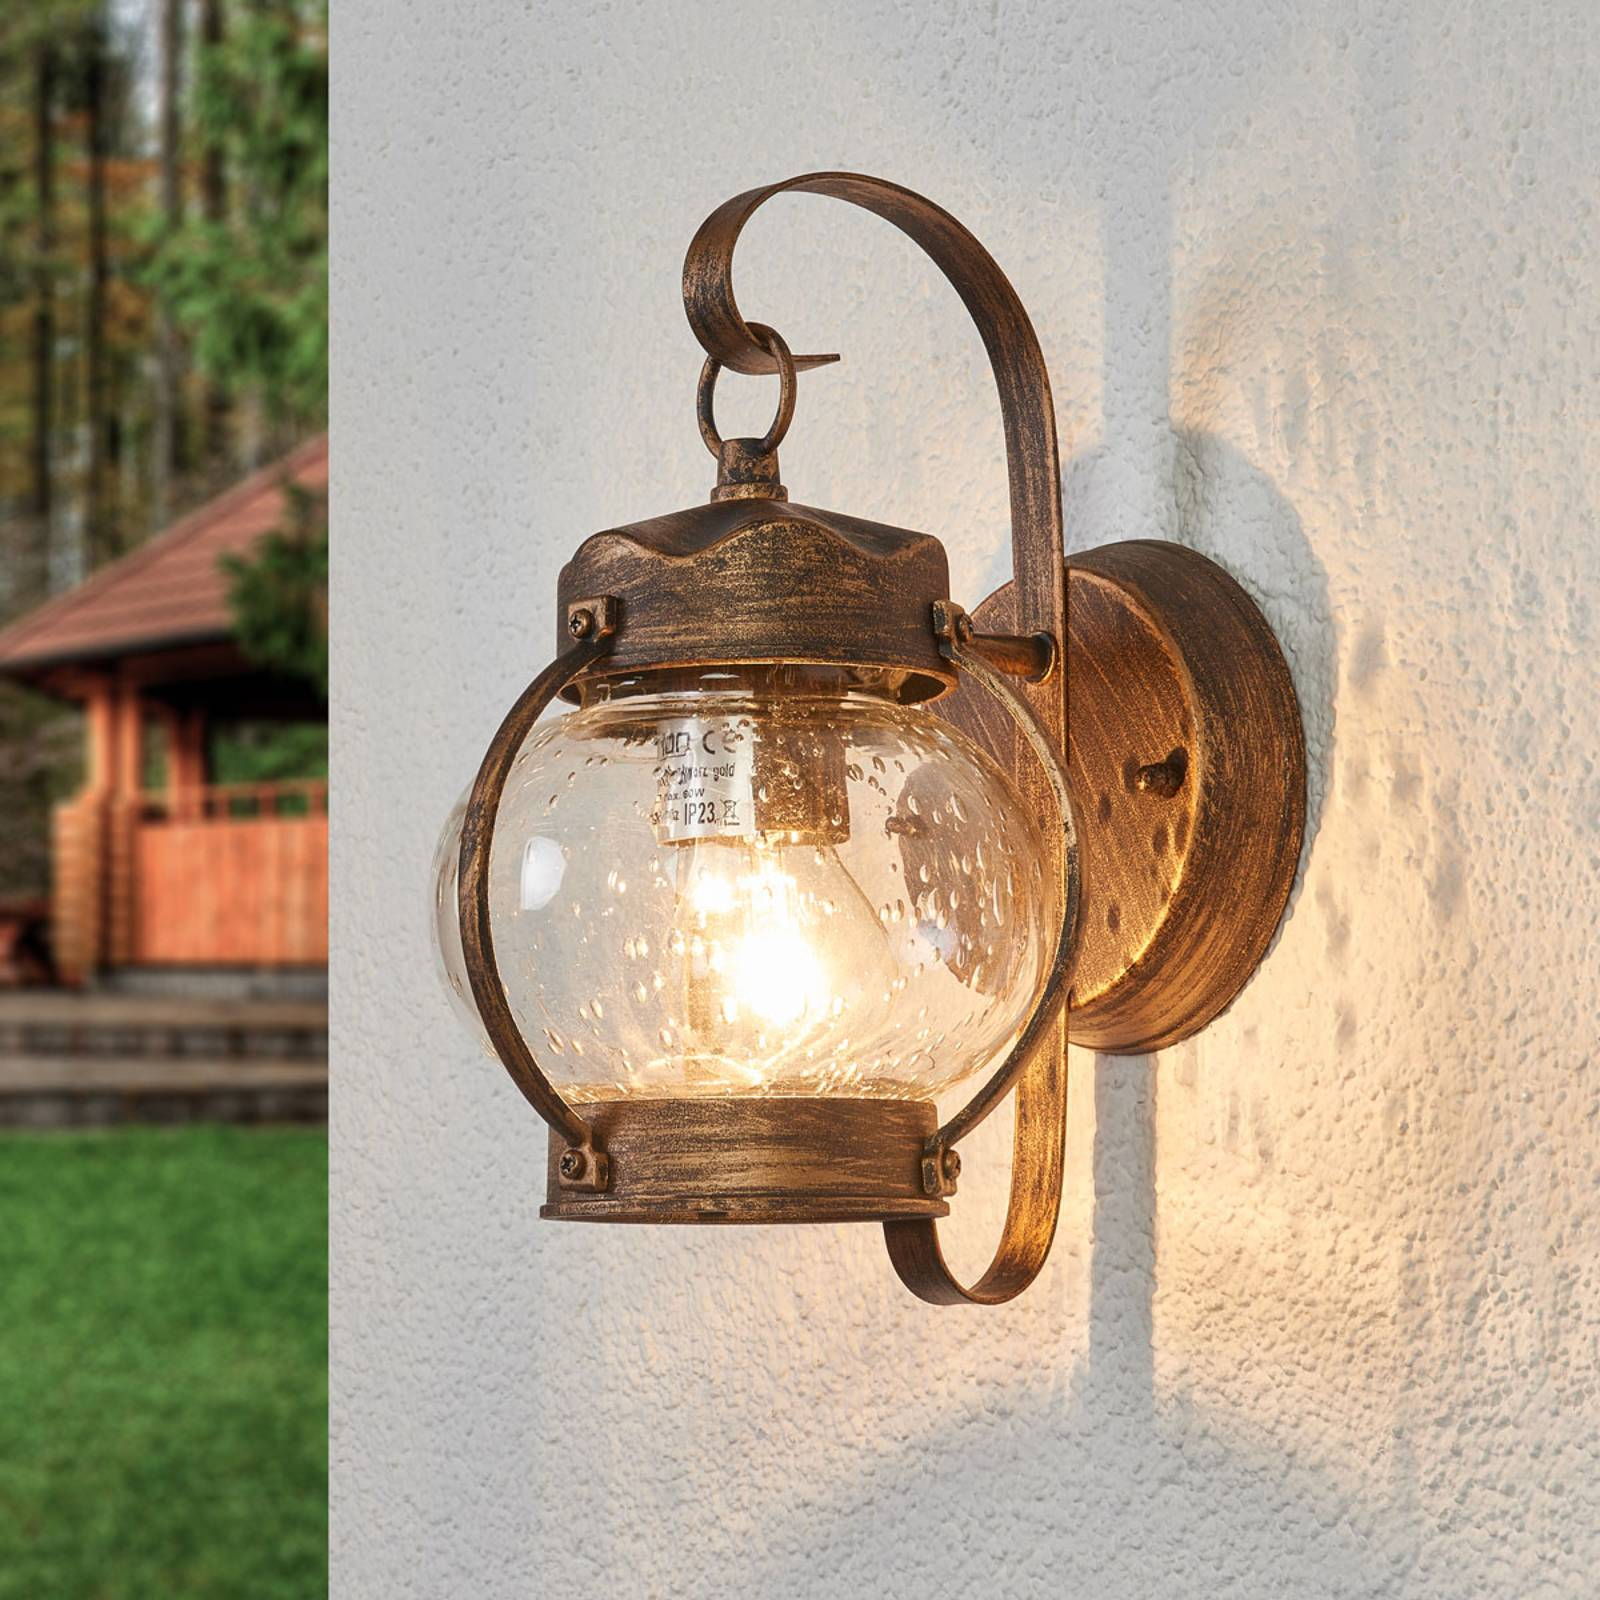 Margerite outdoor wall light with bubble glass from Orion